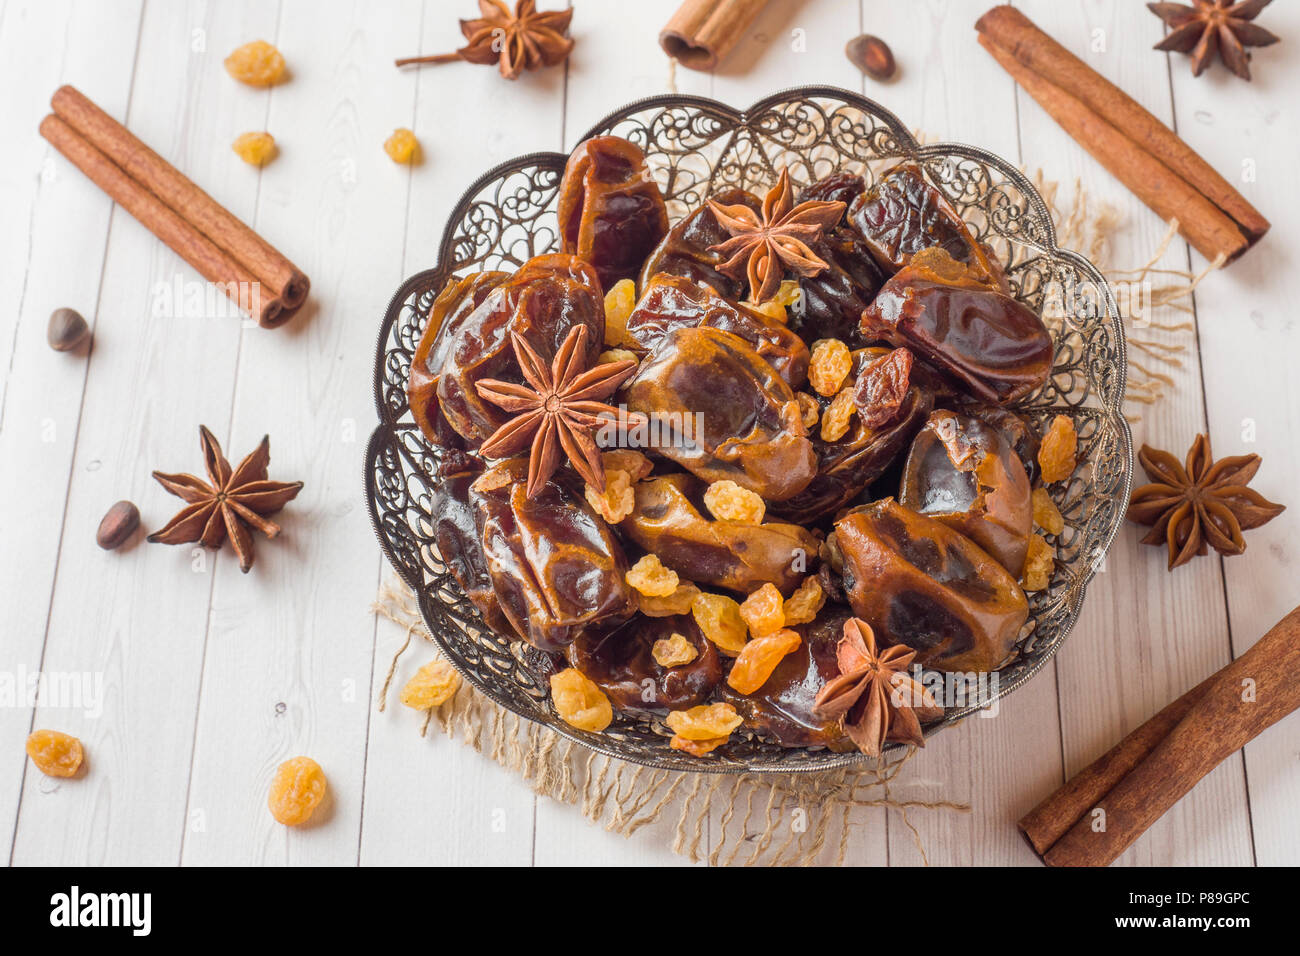 Oriental sweets, dried fruit dates and raisins, cinnamon and star anise in a plate. Turkish tea in glasses on a wooden background - Stock Image